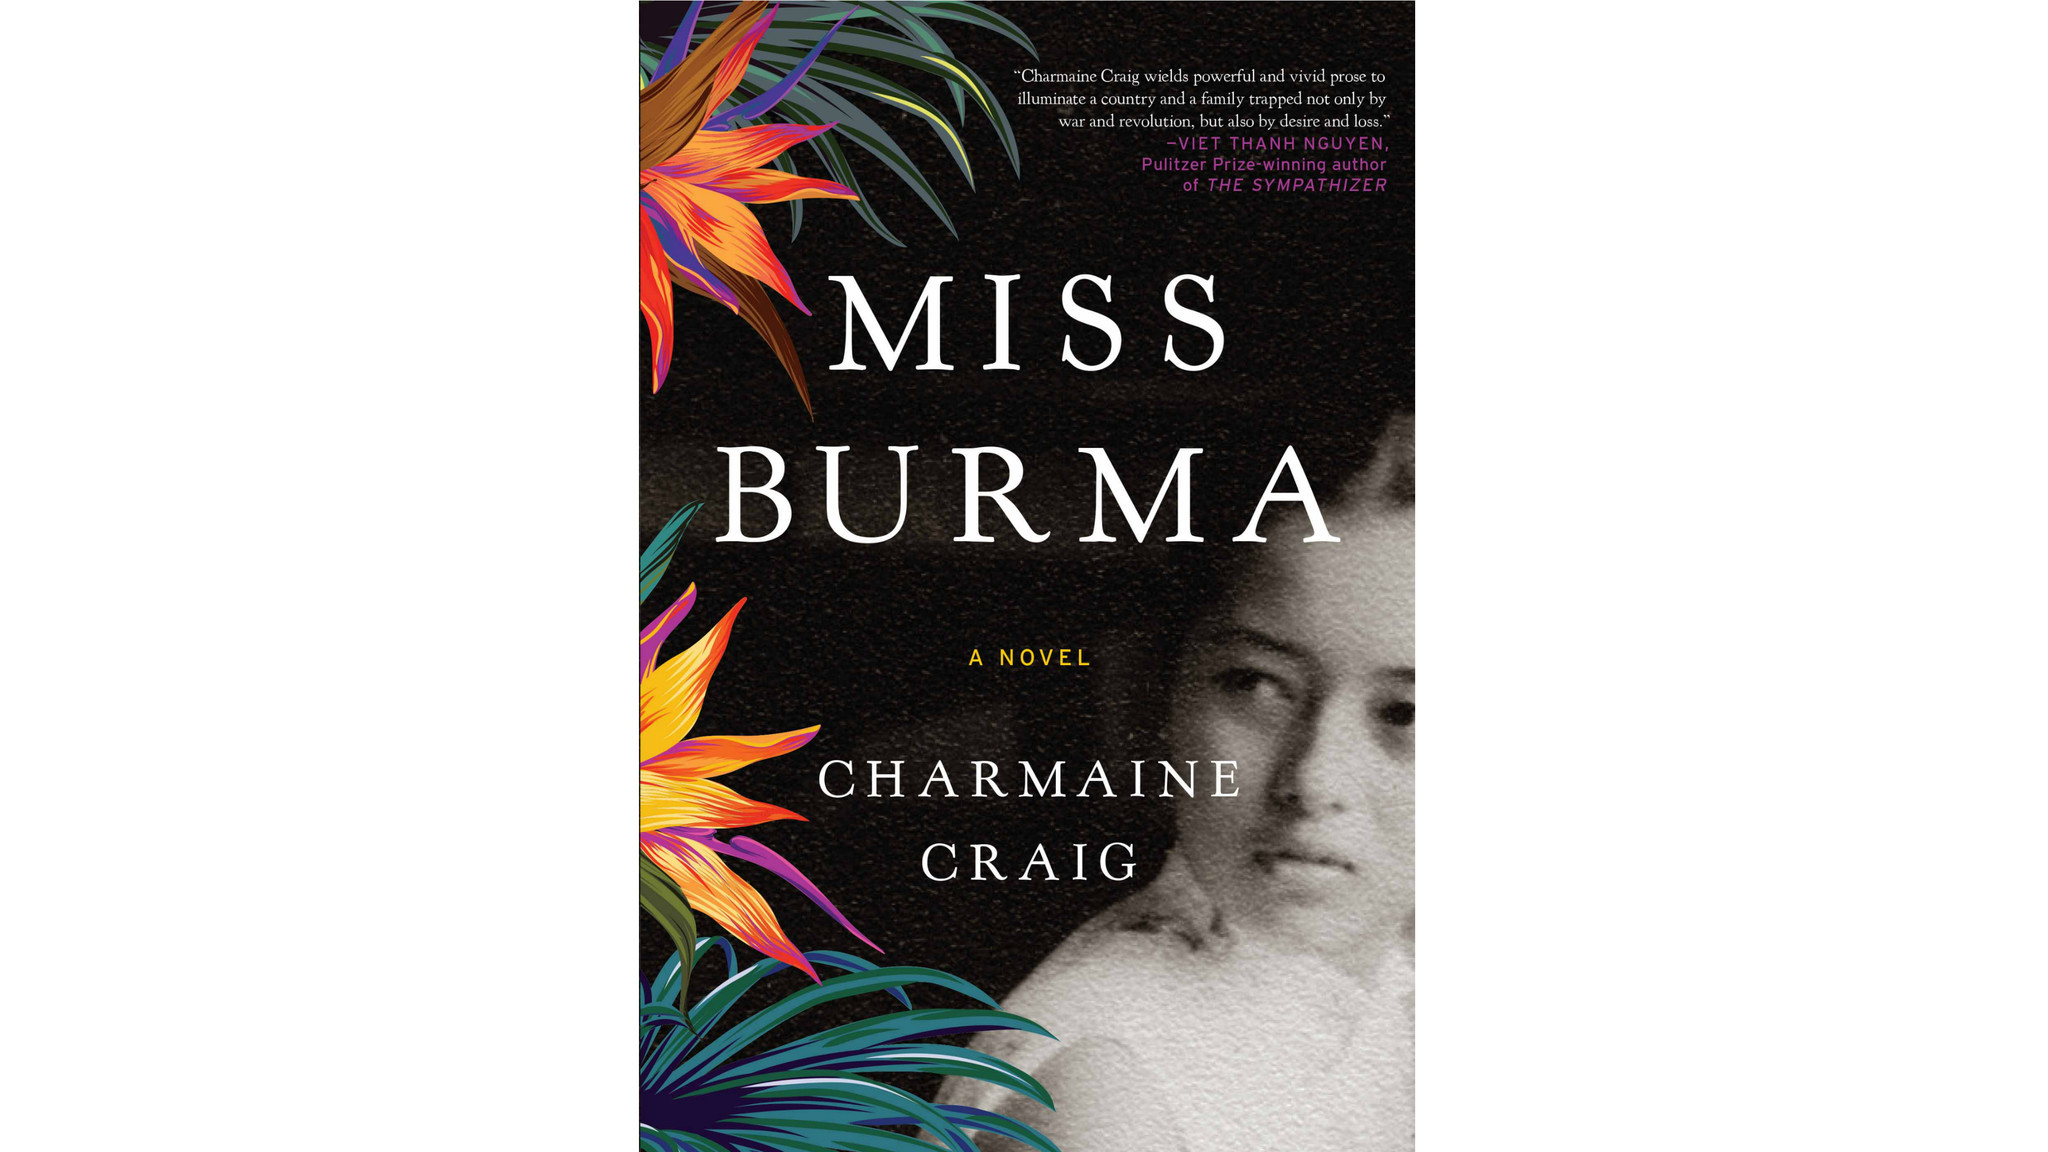 """Miss Burma"" by Charmaine Craig."